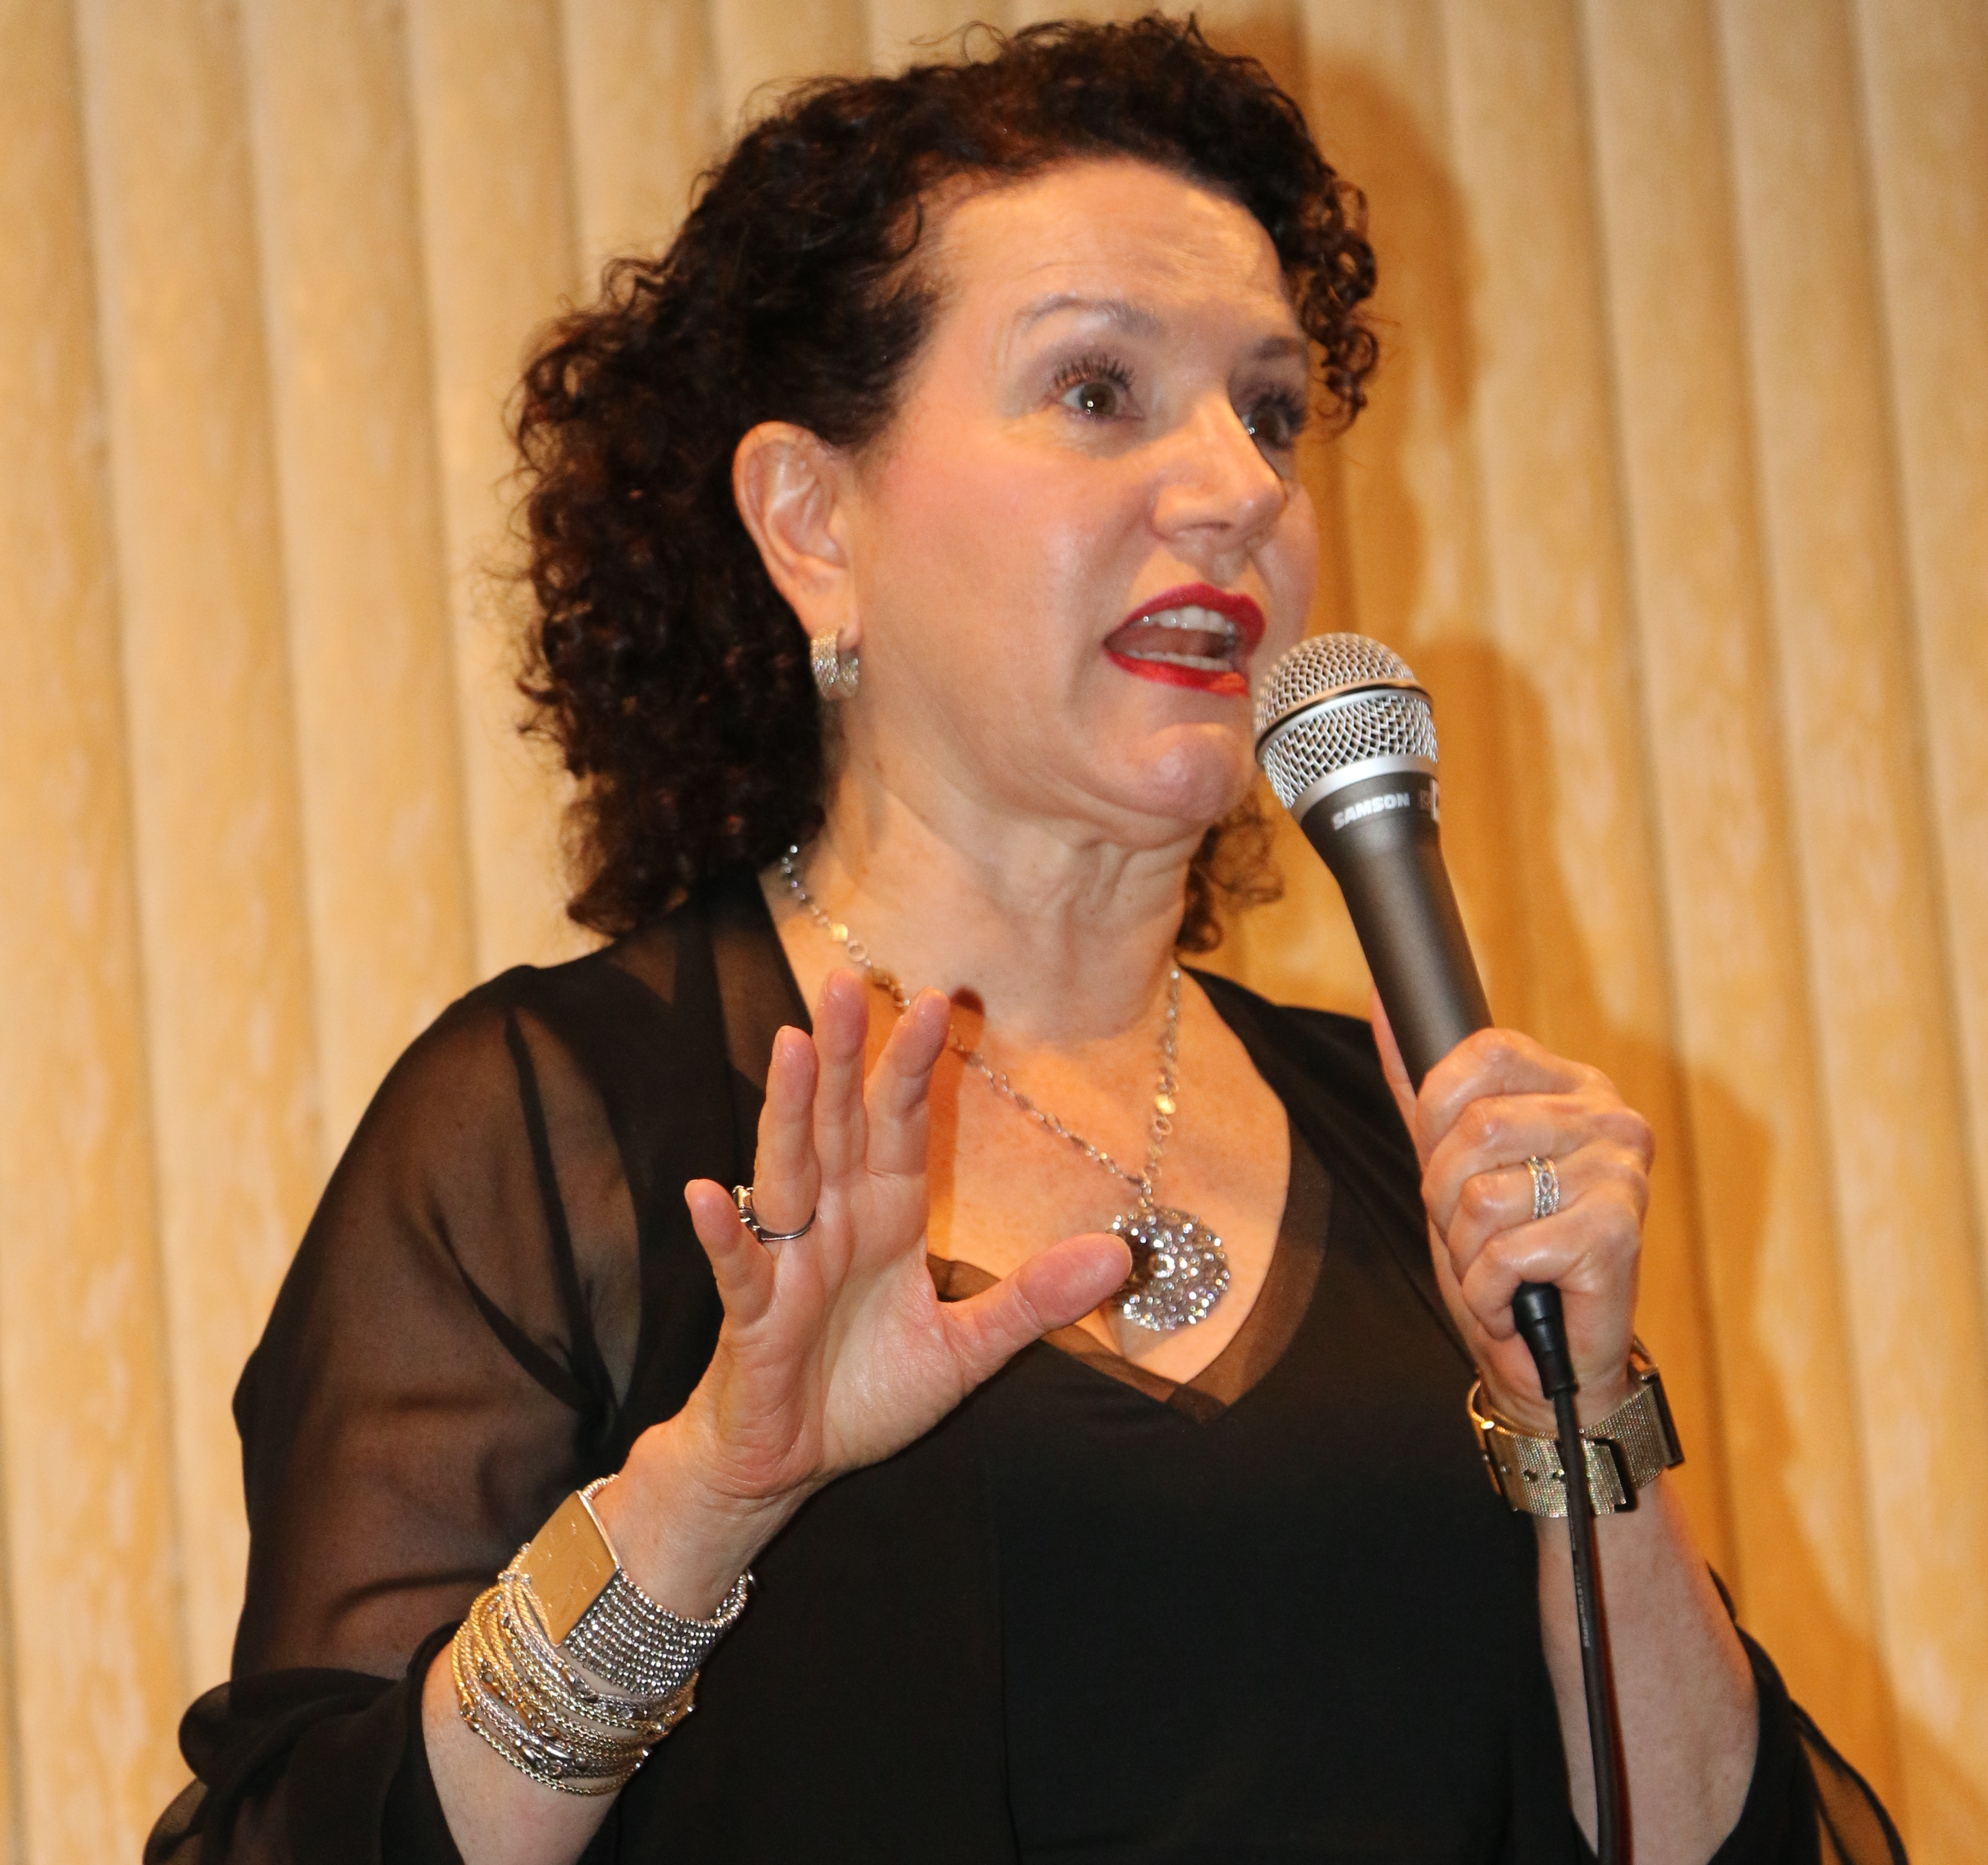 Comedian Susie Essman headlines North Shore Towers 40th anniversary, talks craft